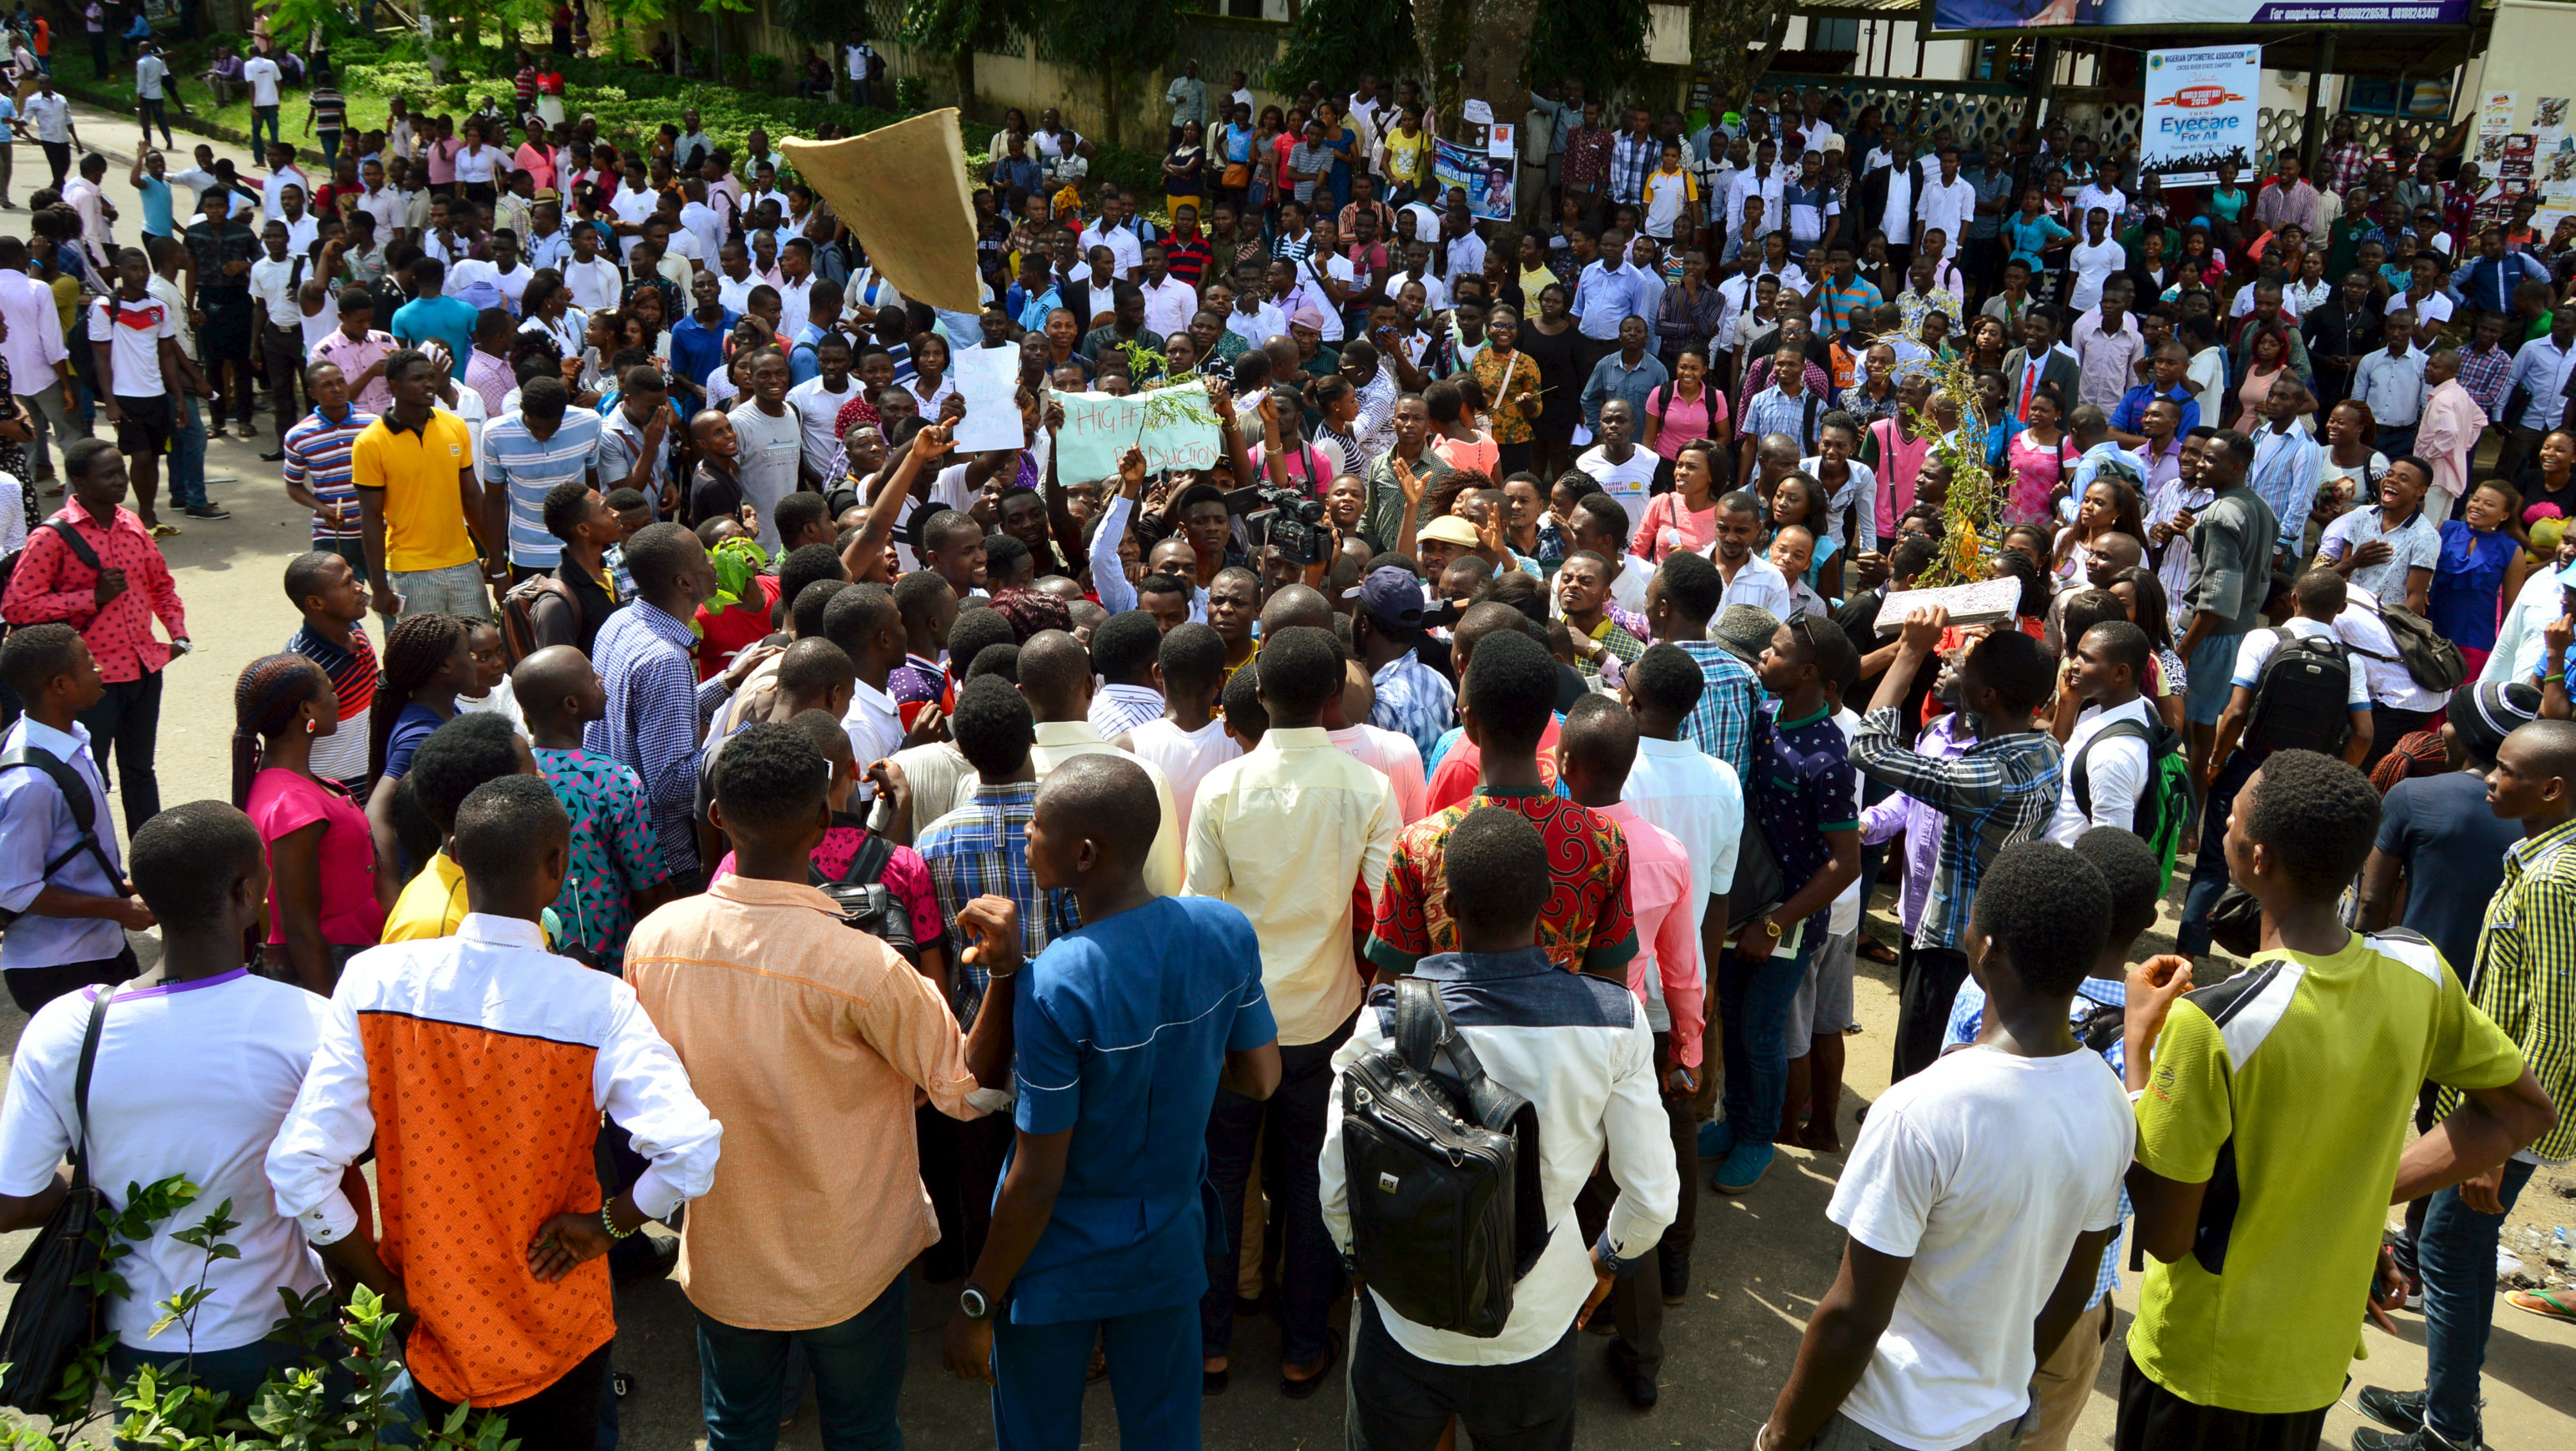 Students of the University of Calabar take part in a protest over tuition fees and against what they say is poor infrastructure in the university, in Calabar, Nigeria October 12, 2015.